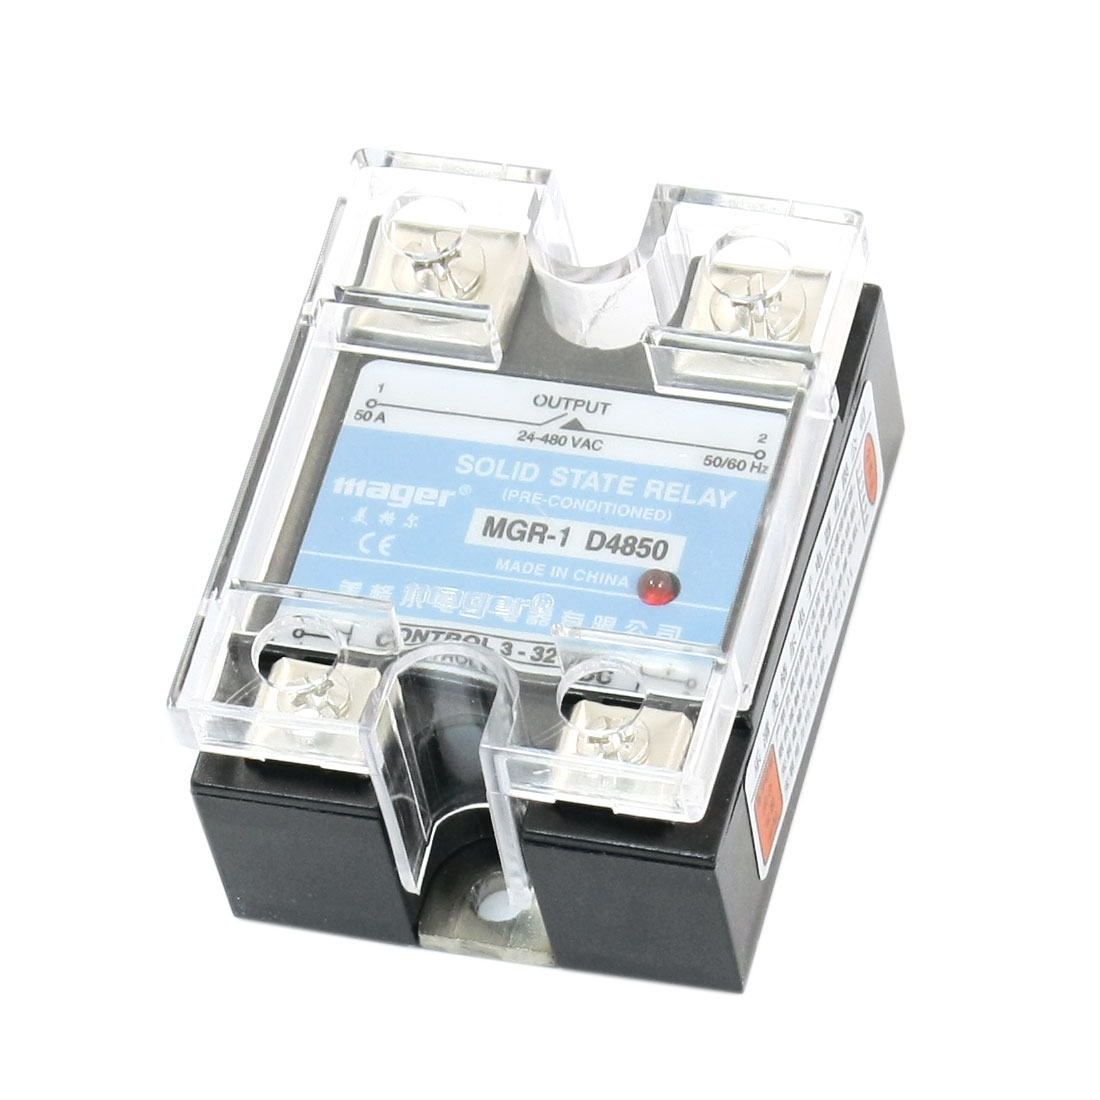 MGR-1 D4850 DC-AC DC3-32V AC24-480V 50A 4 Screw Terminal Single Phase Clear Cover SSR Solid State Relay